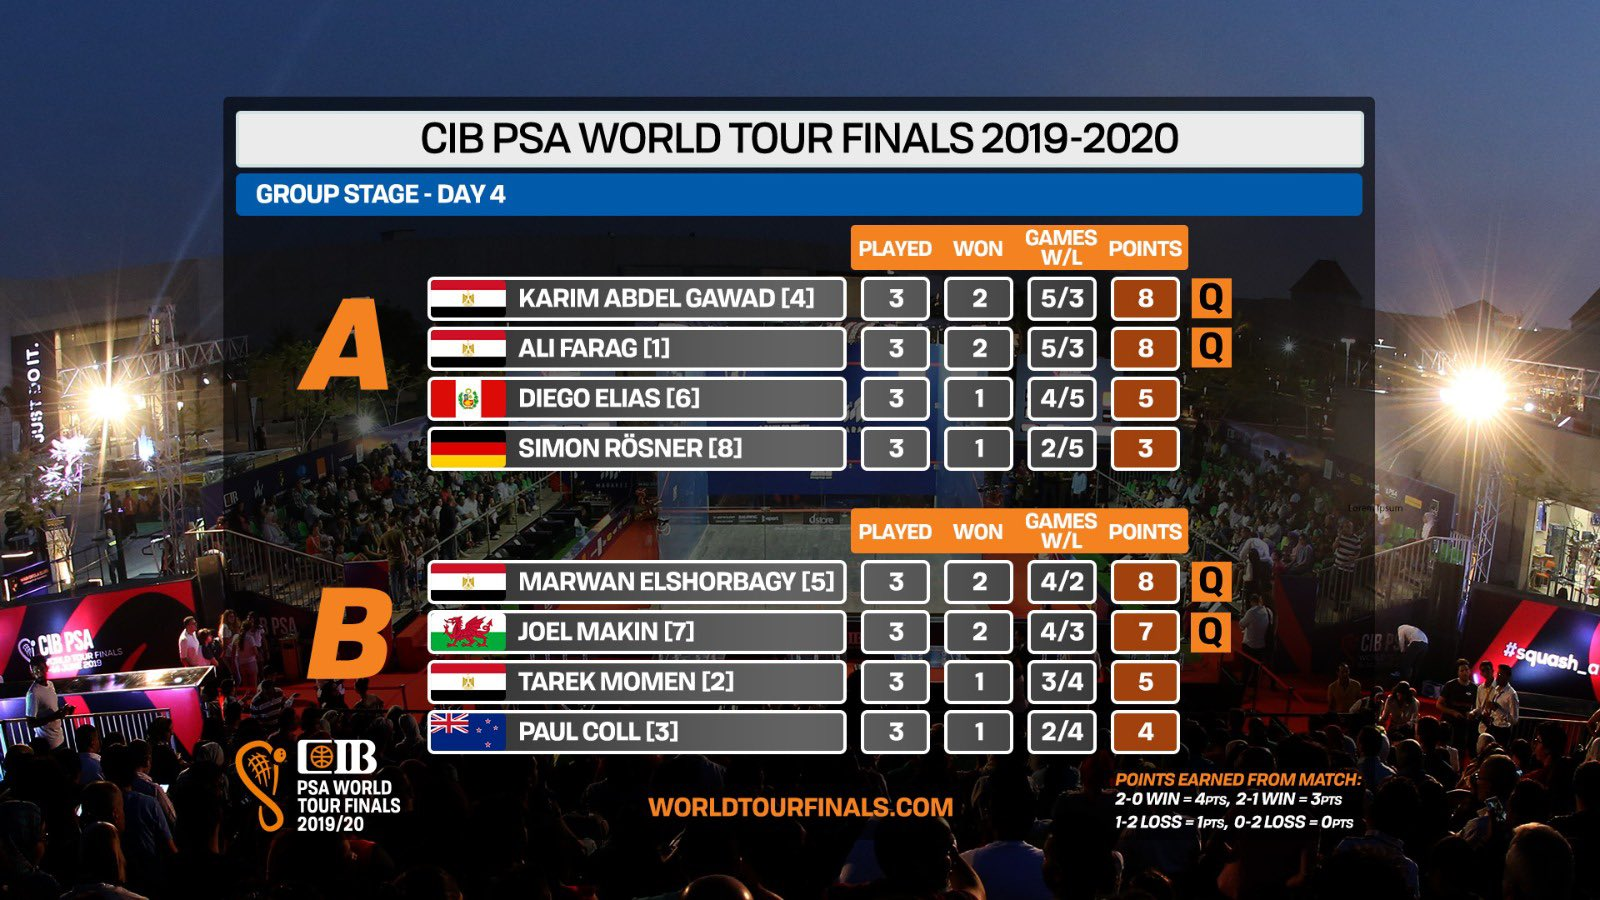 Final group standings for the men at the PSA World Tour Finals